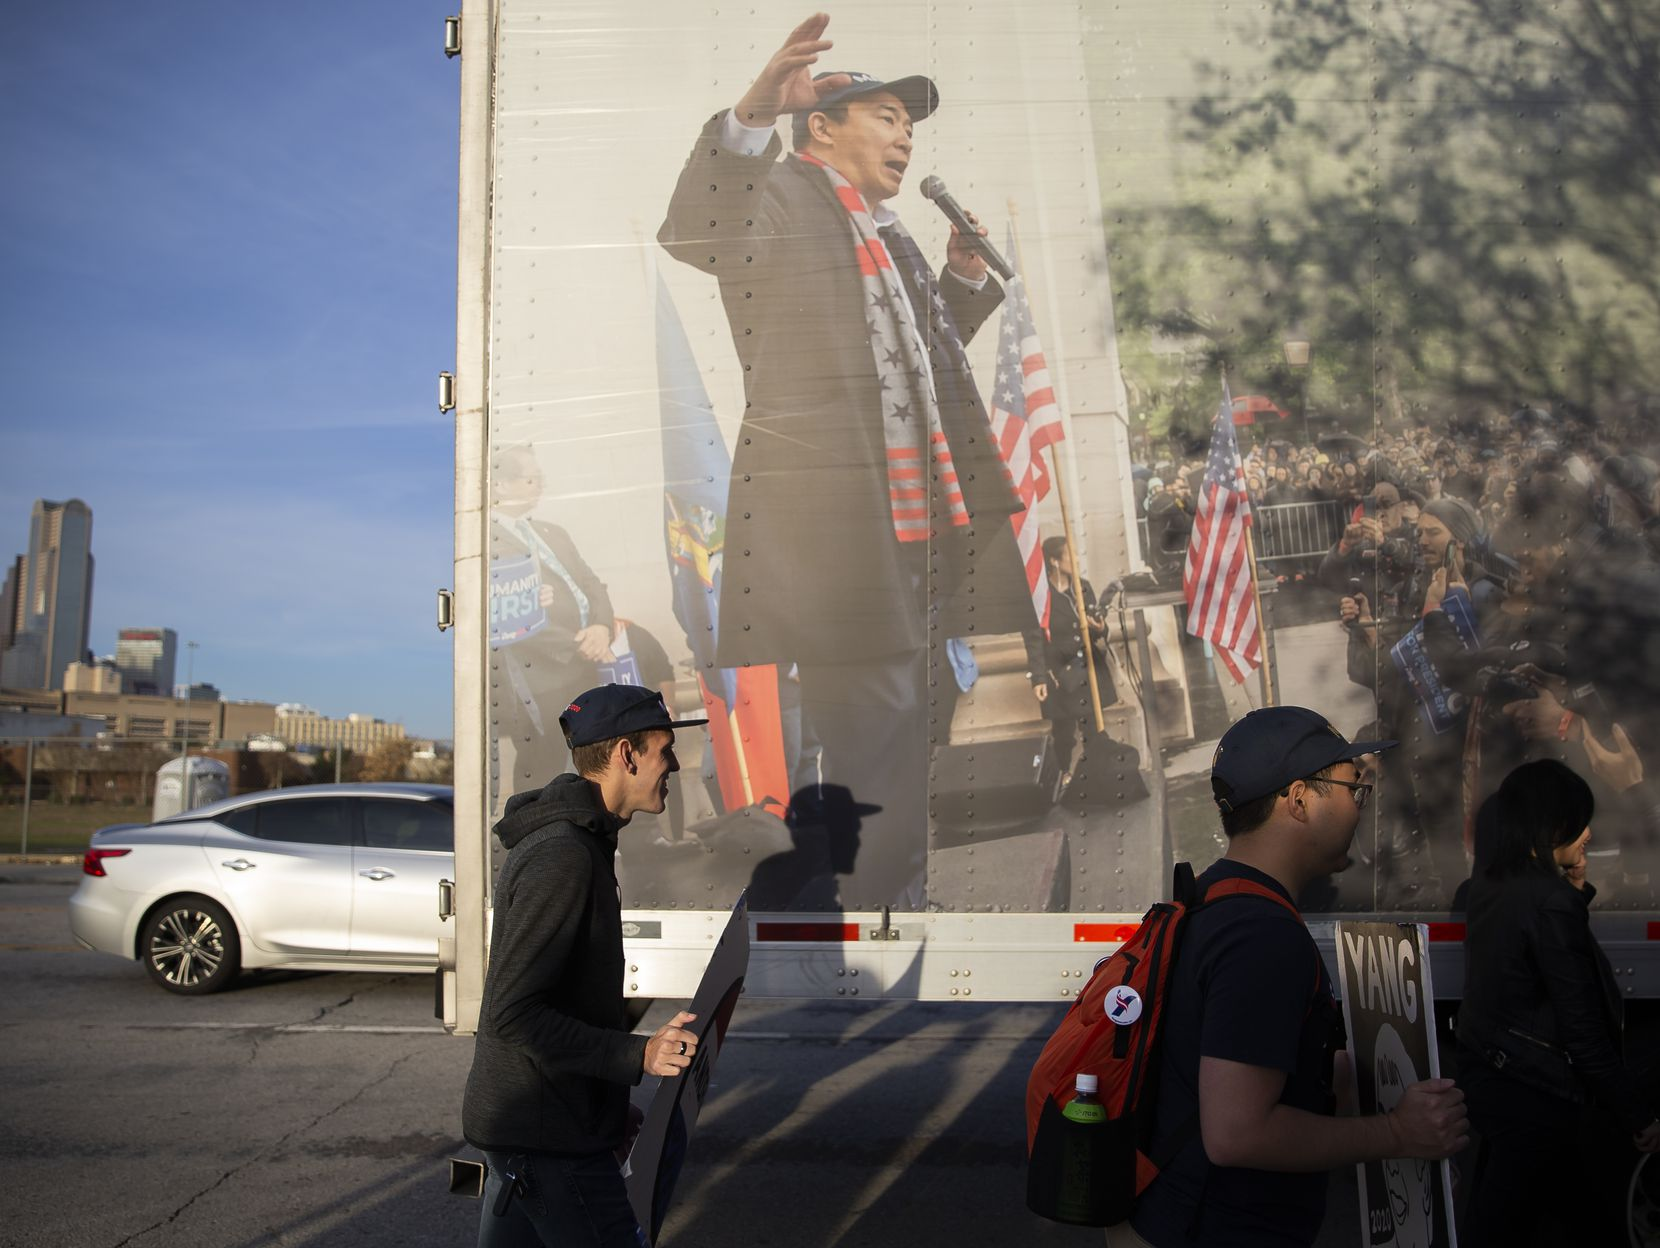 Austin ÒYang GangÓ members walk by the ÒTrukerÕs for YangÓ semi before presidential candidate Andrew Yang's grassroots fundraiser at GilleyÕs Dallas on Dec. 6, 2019 in Dallas.